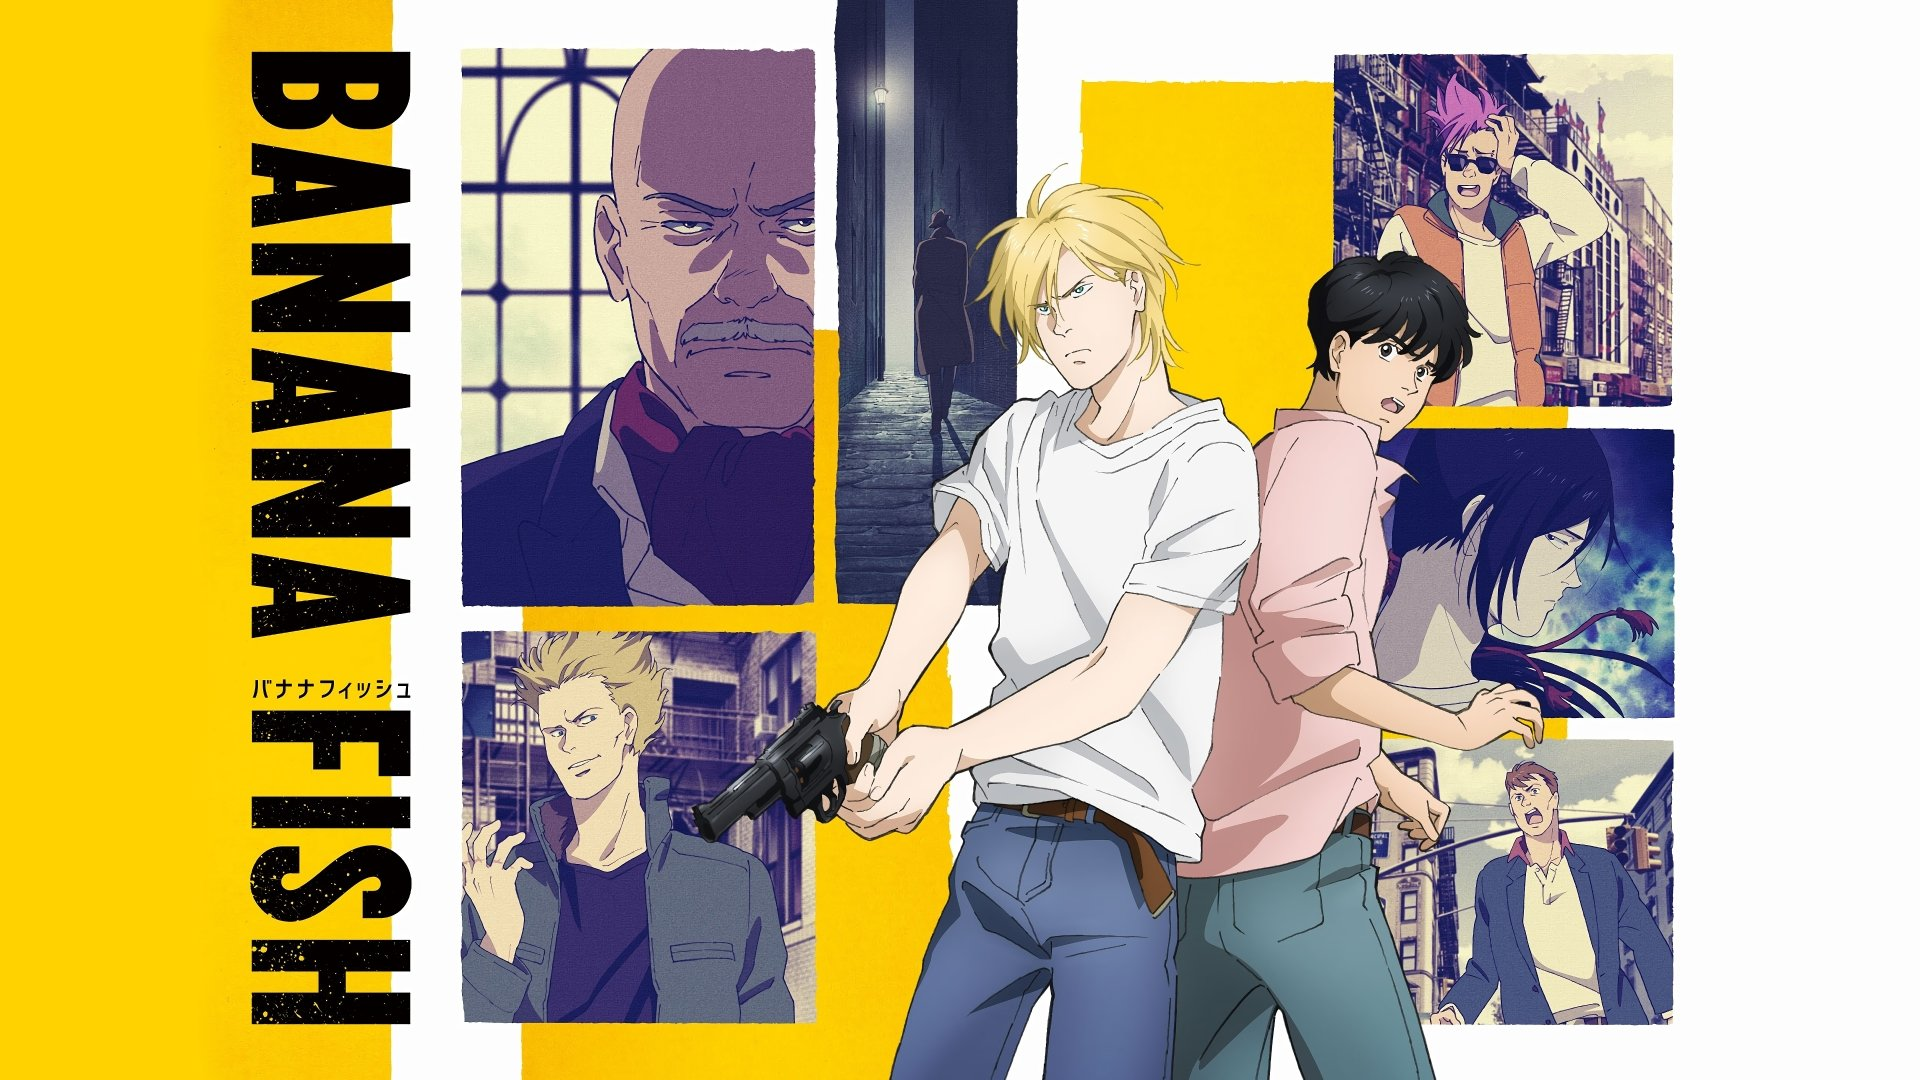 7. Nudrat - Banana Fish